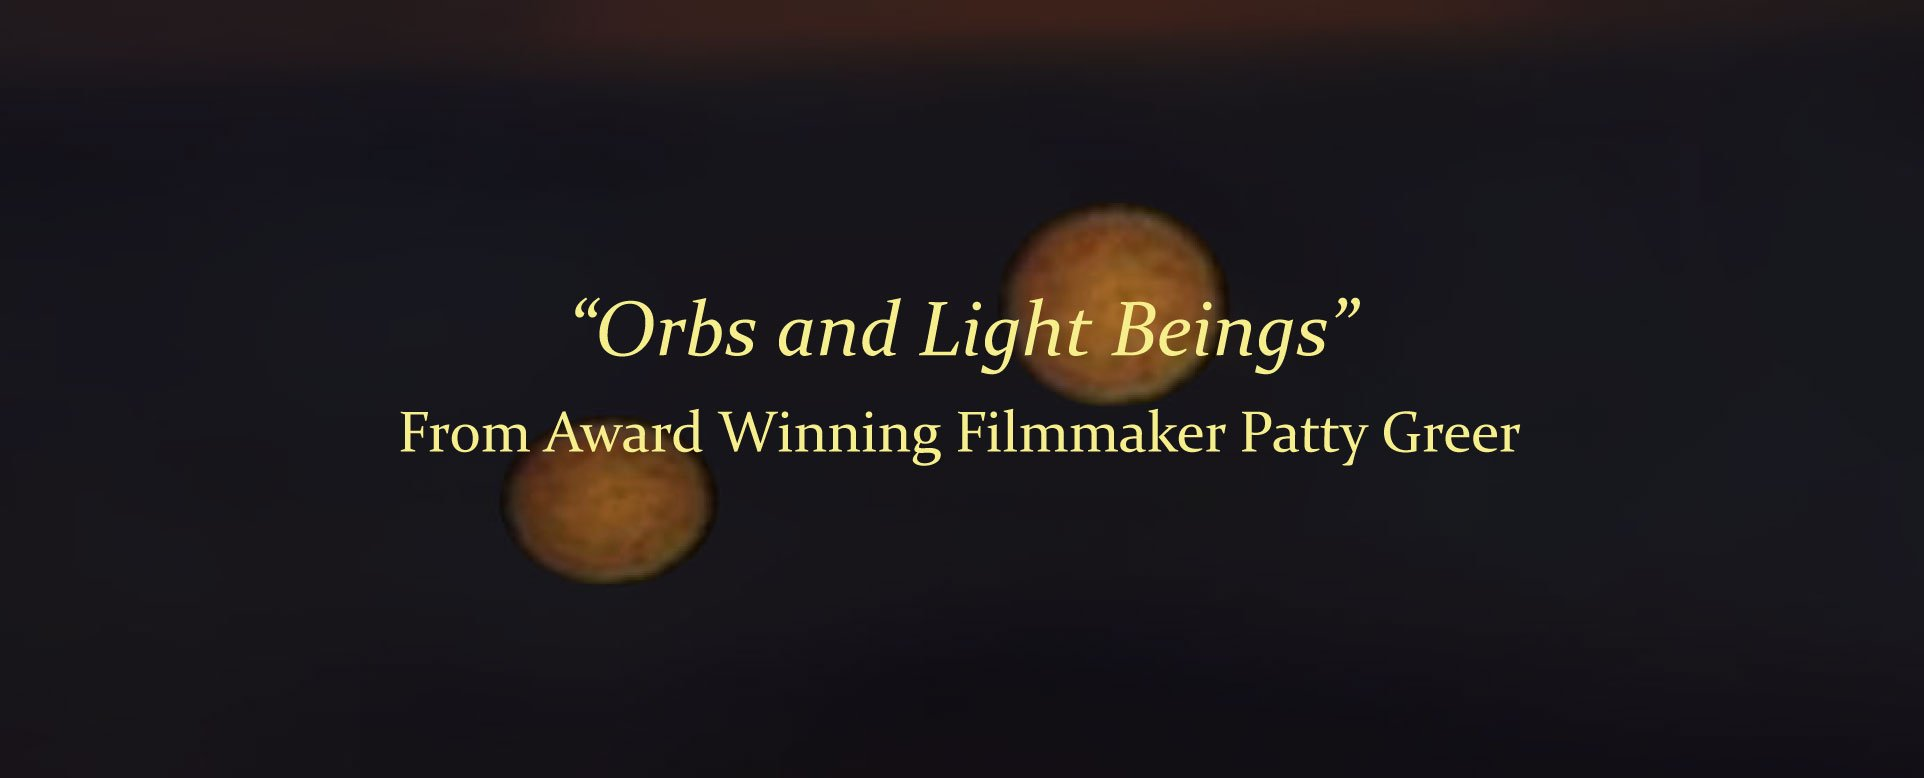 orbs-and-light-beings---movie-page